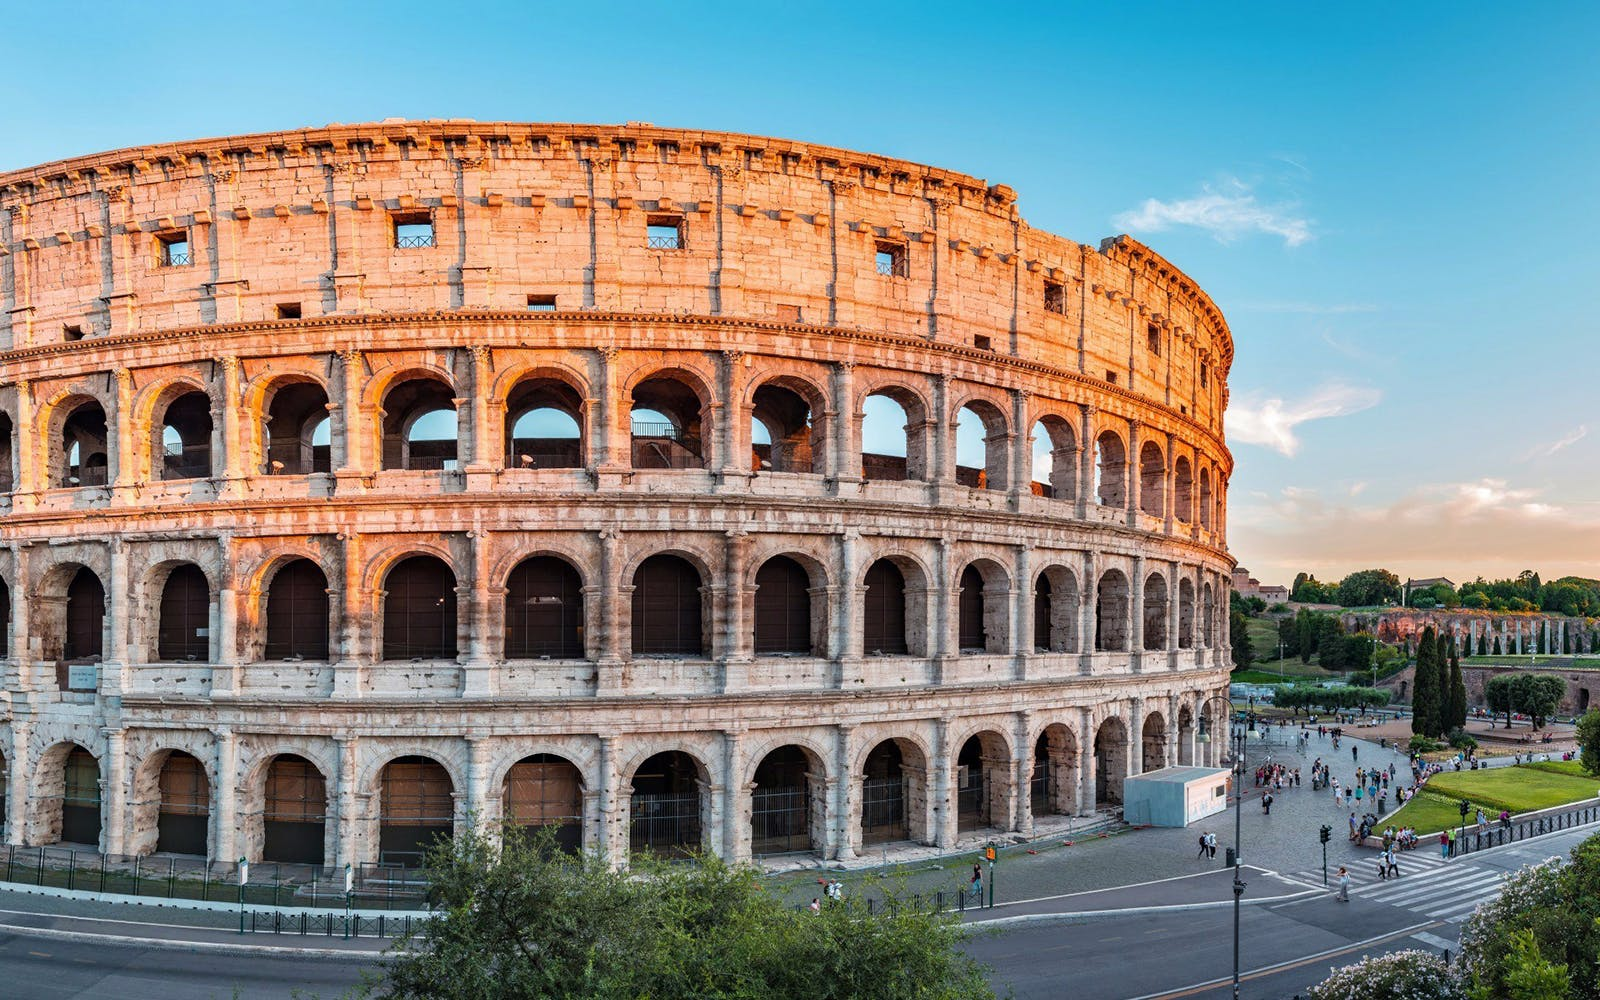 Tickets + Audioguide to Colosseum, Roman Forum and Palatine Hill